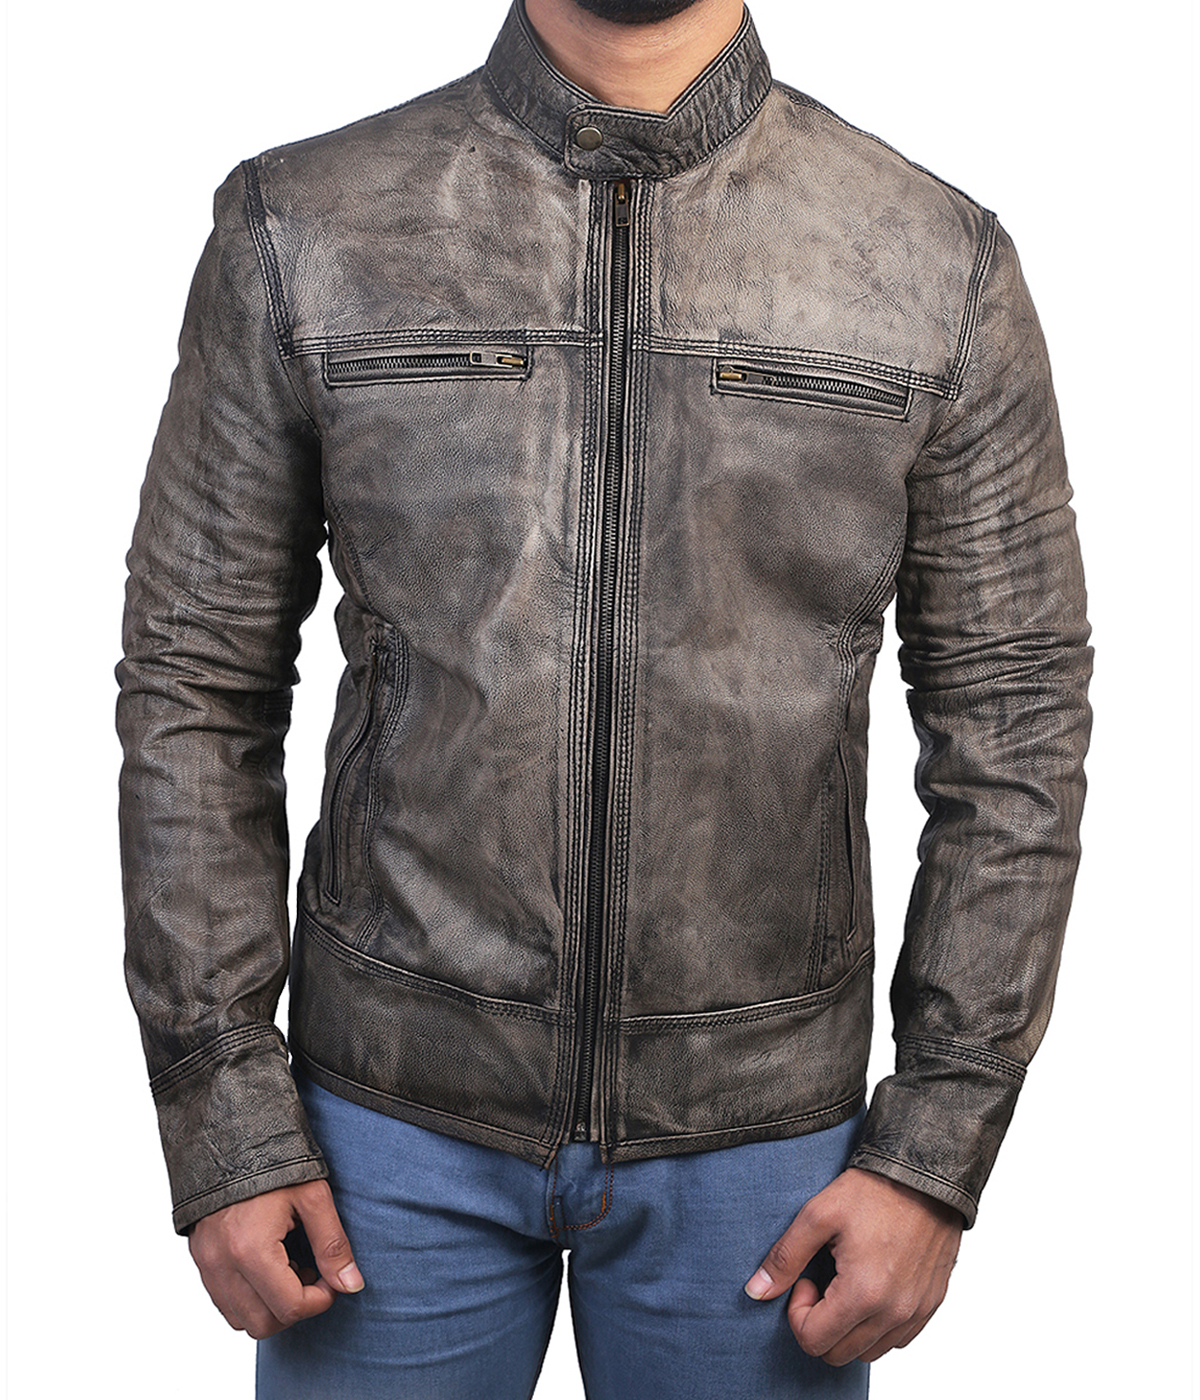 Distressed Wax Men S Biker Vintage Style Cafe Racer Motorcycle